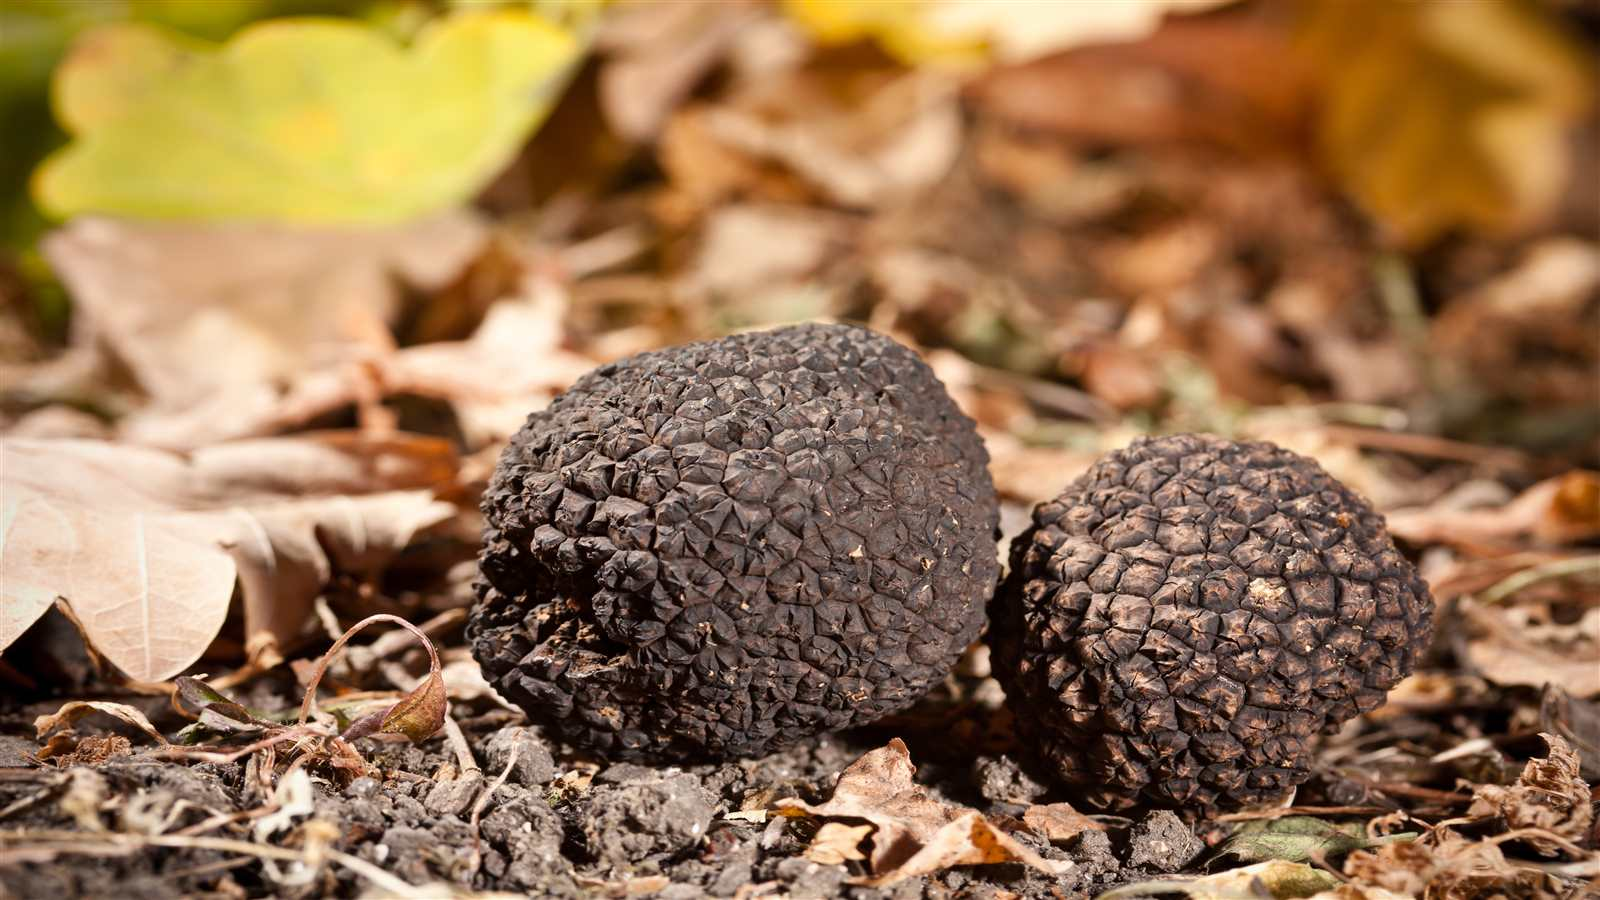 Truffle Hunting in Parma